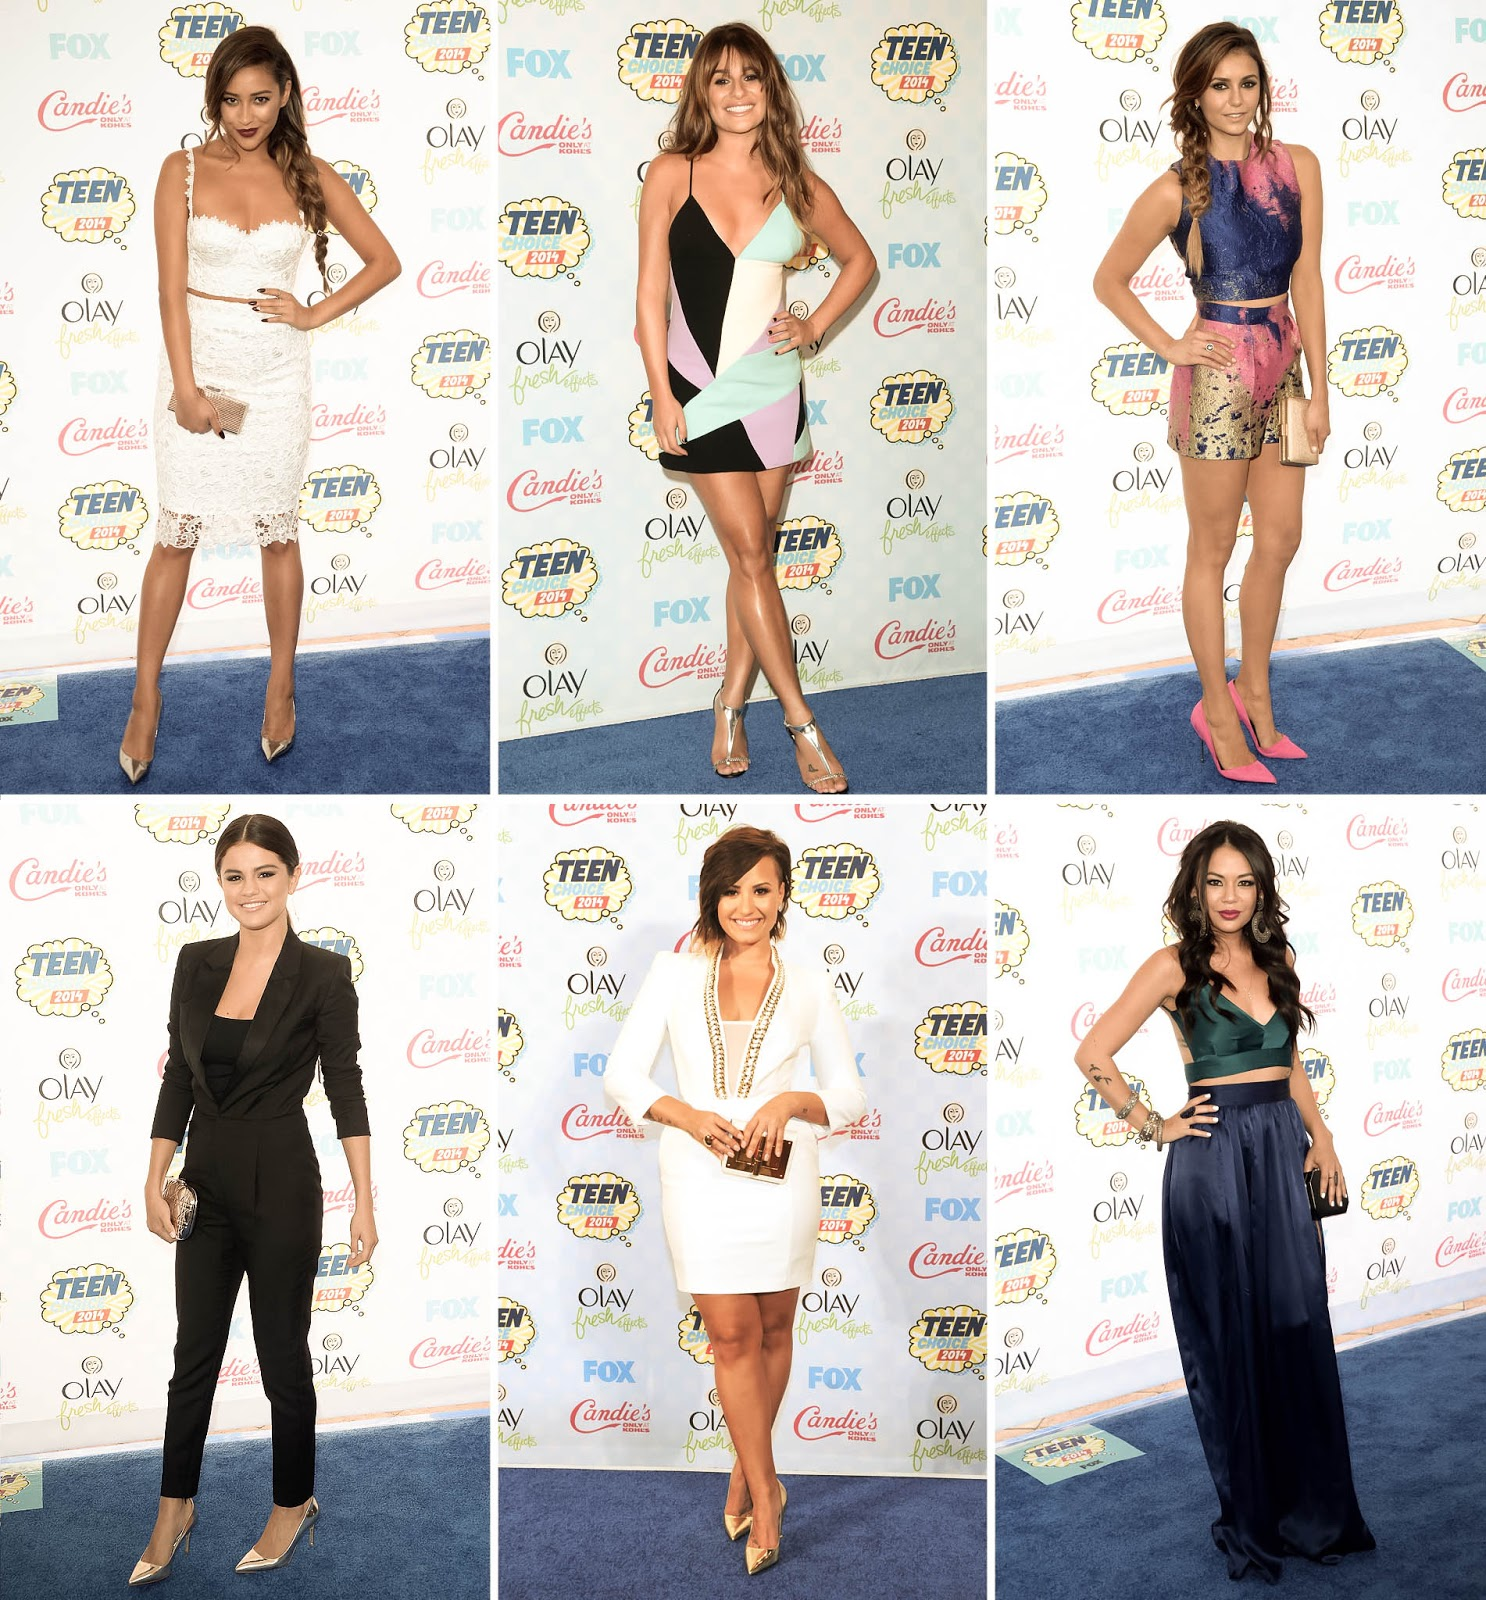 2014 Teen Choice Awards Best-Dressed | le paper doll ...